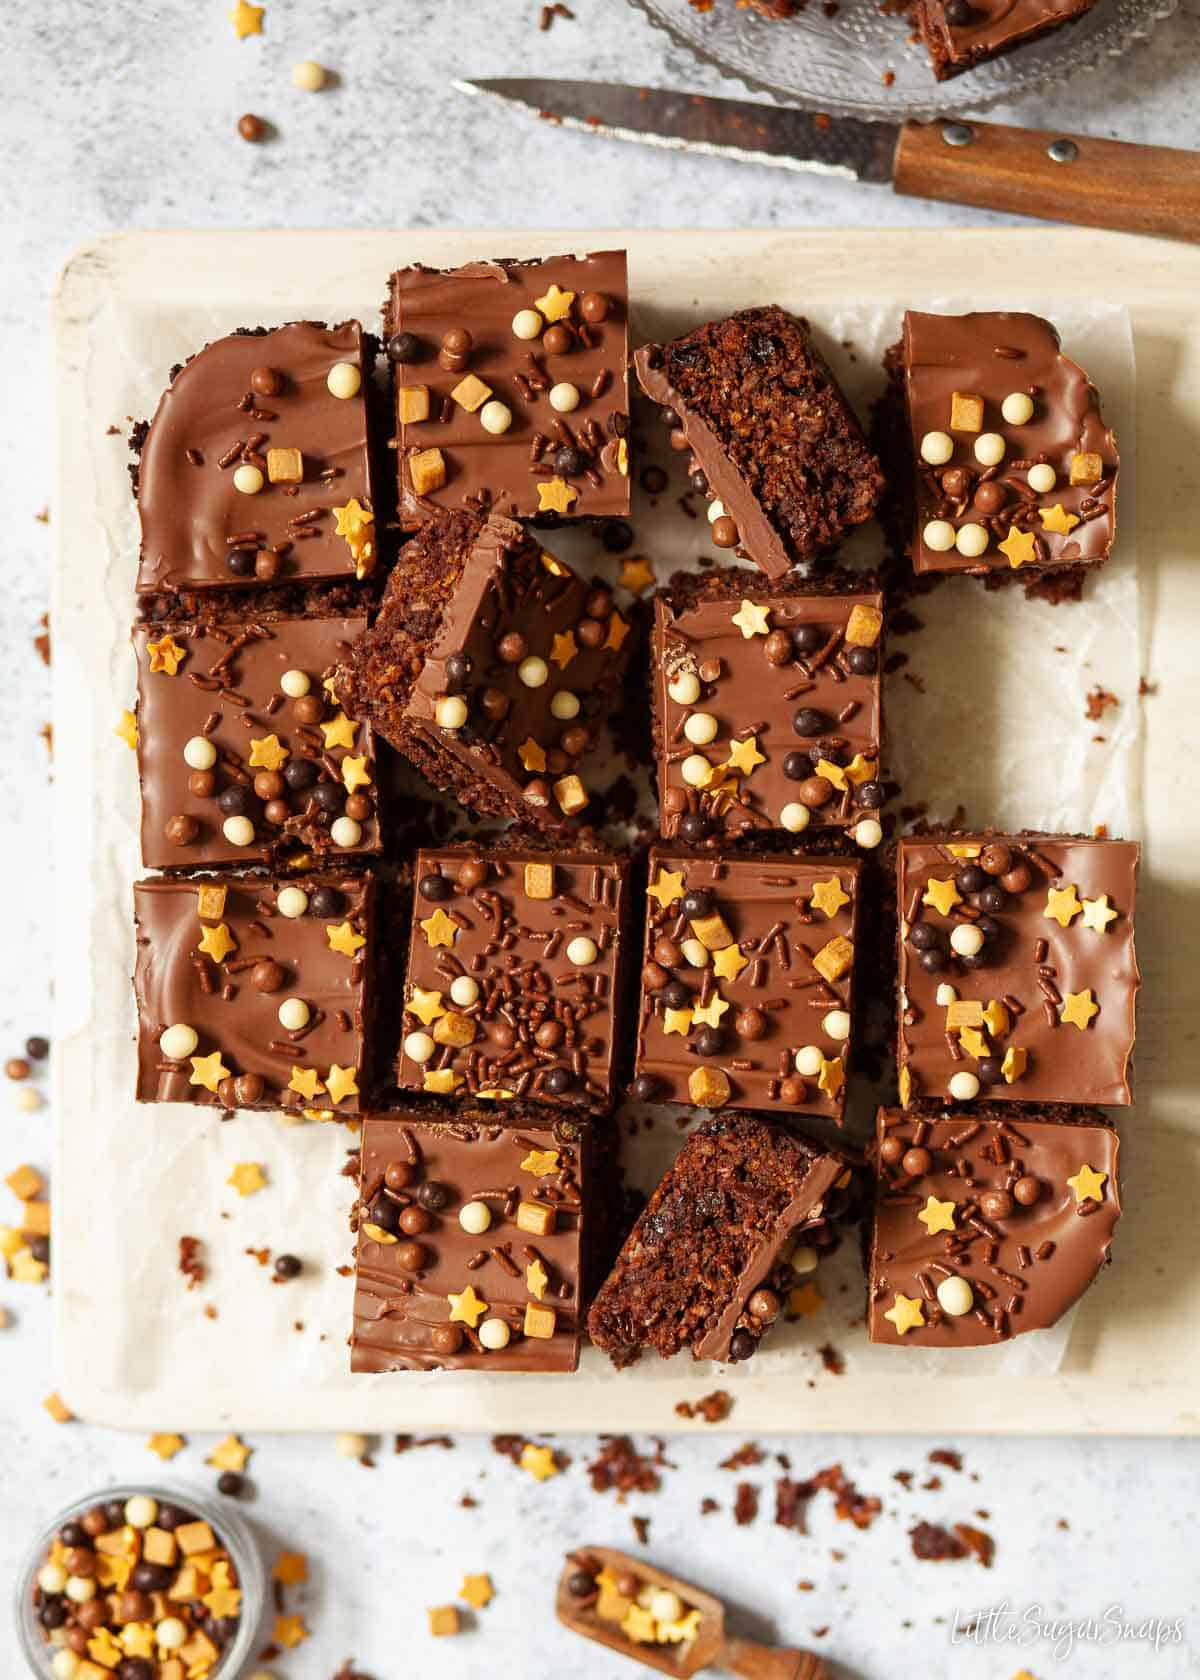 Aussie crunch squares tpped with chocolate and sprinkles